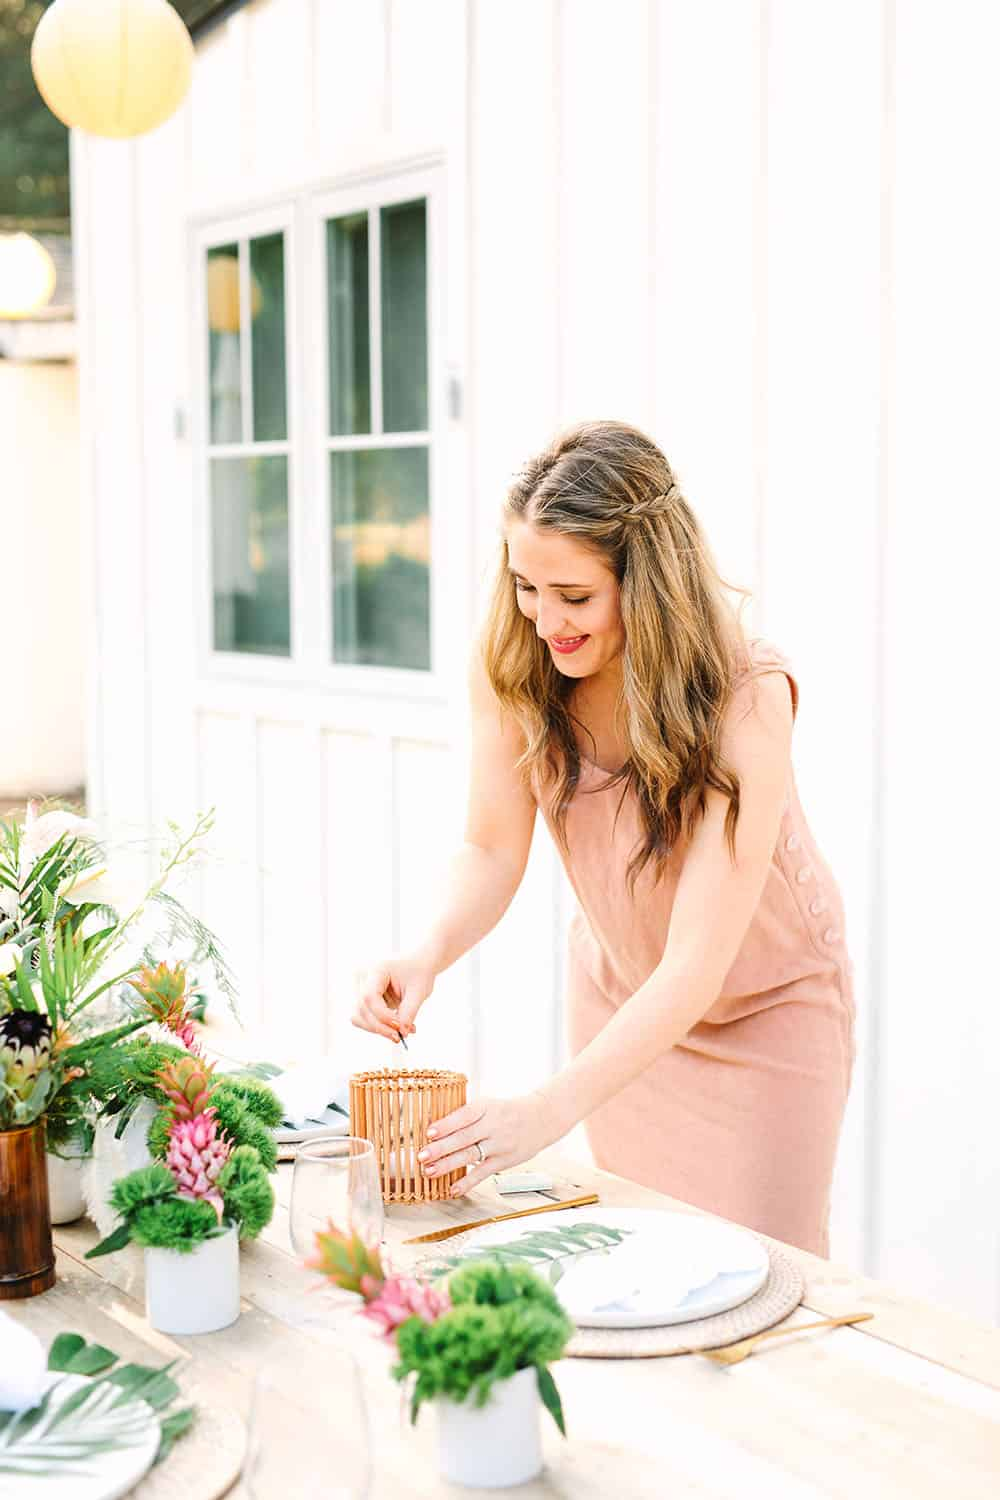 Eden Passante lighting a candle for a tropical party